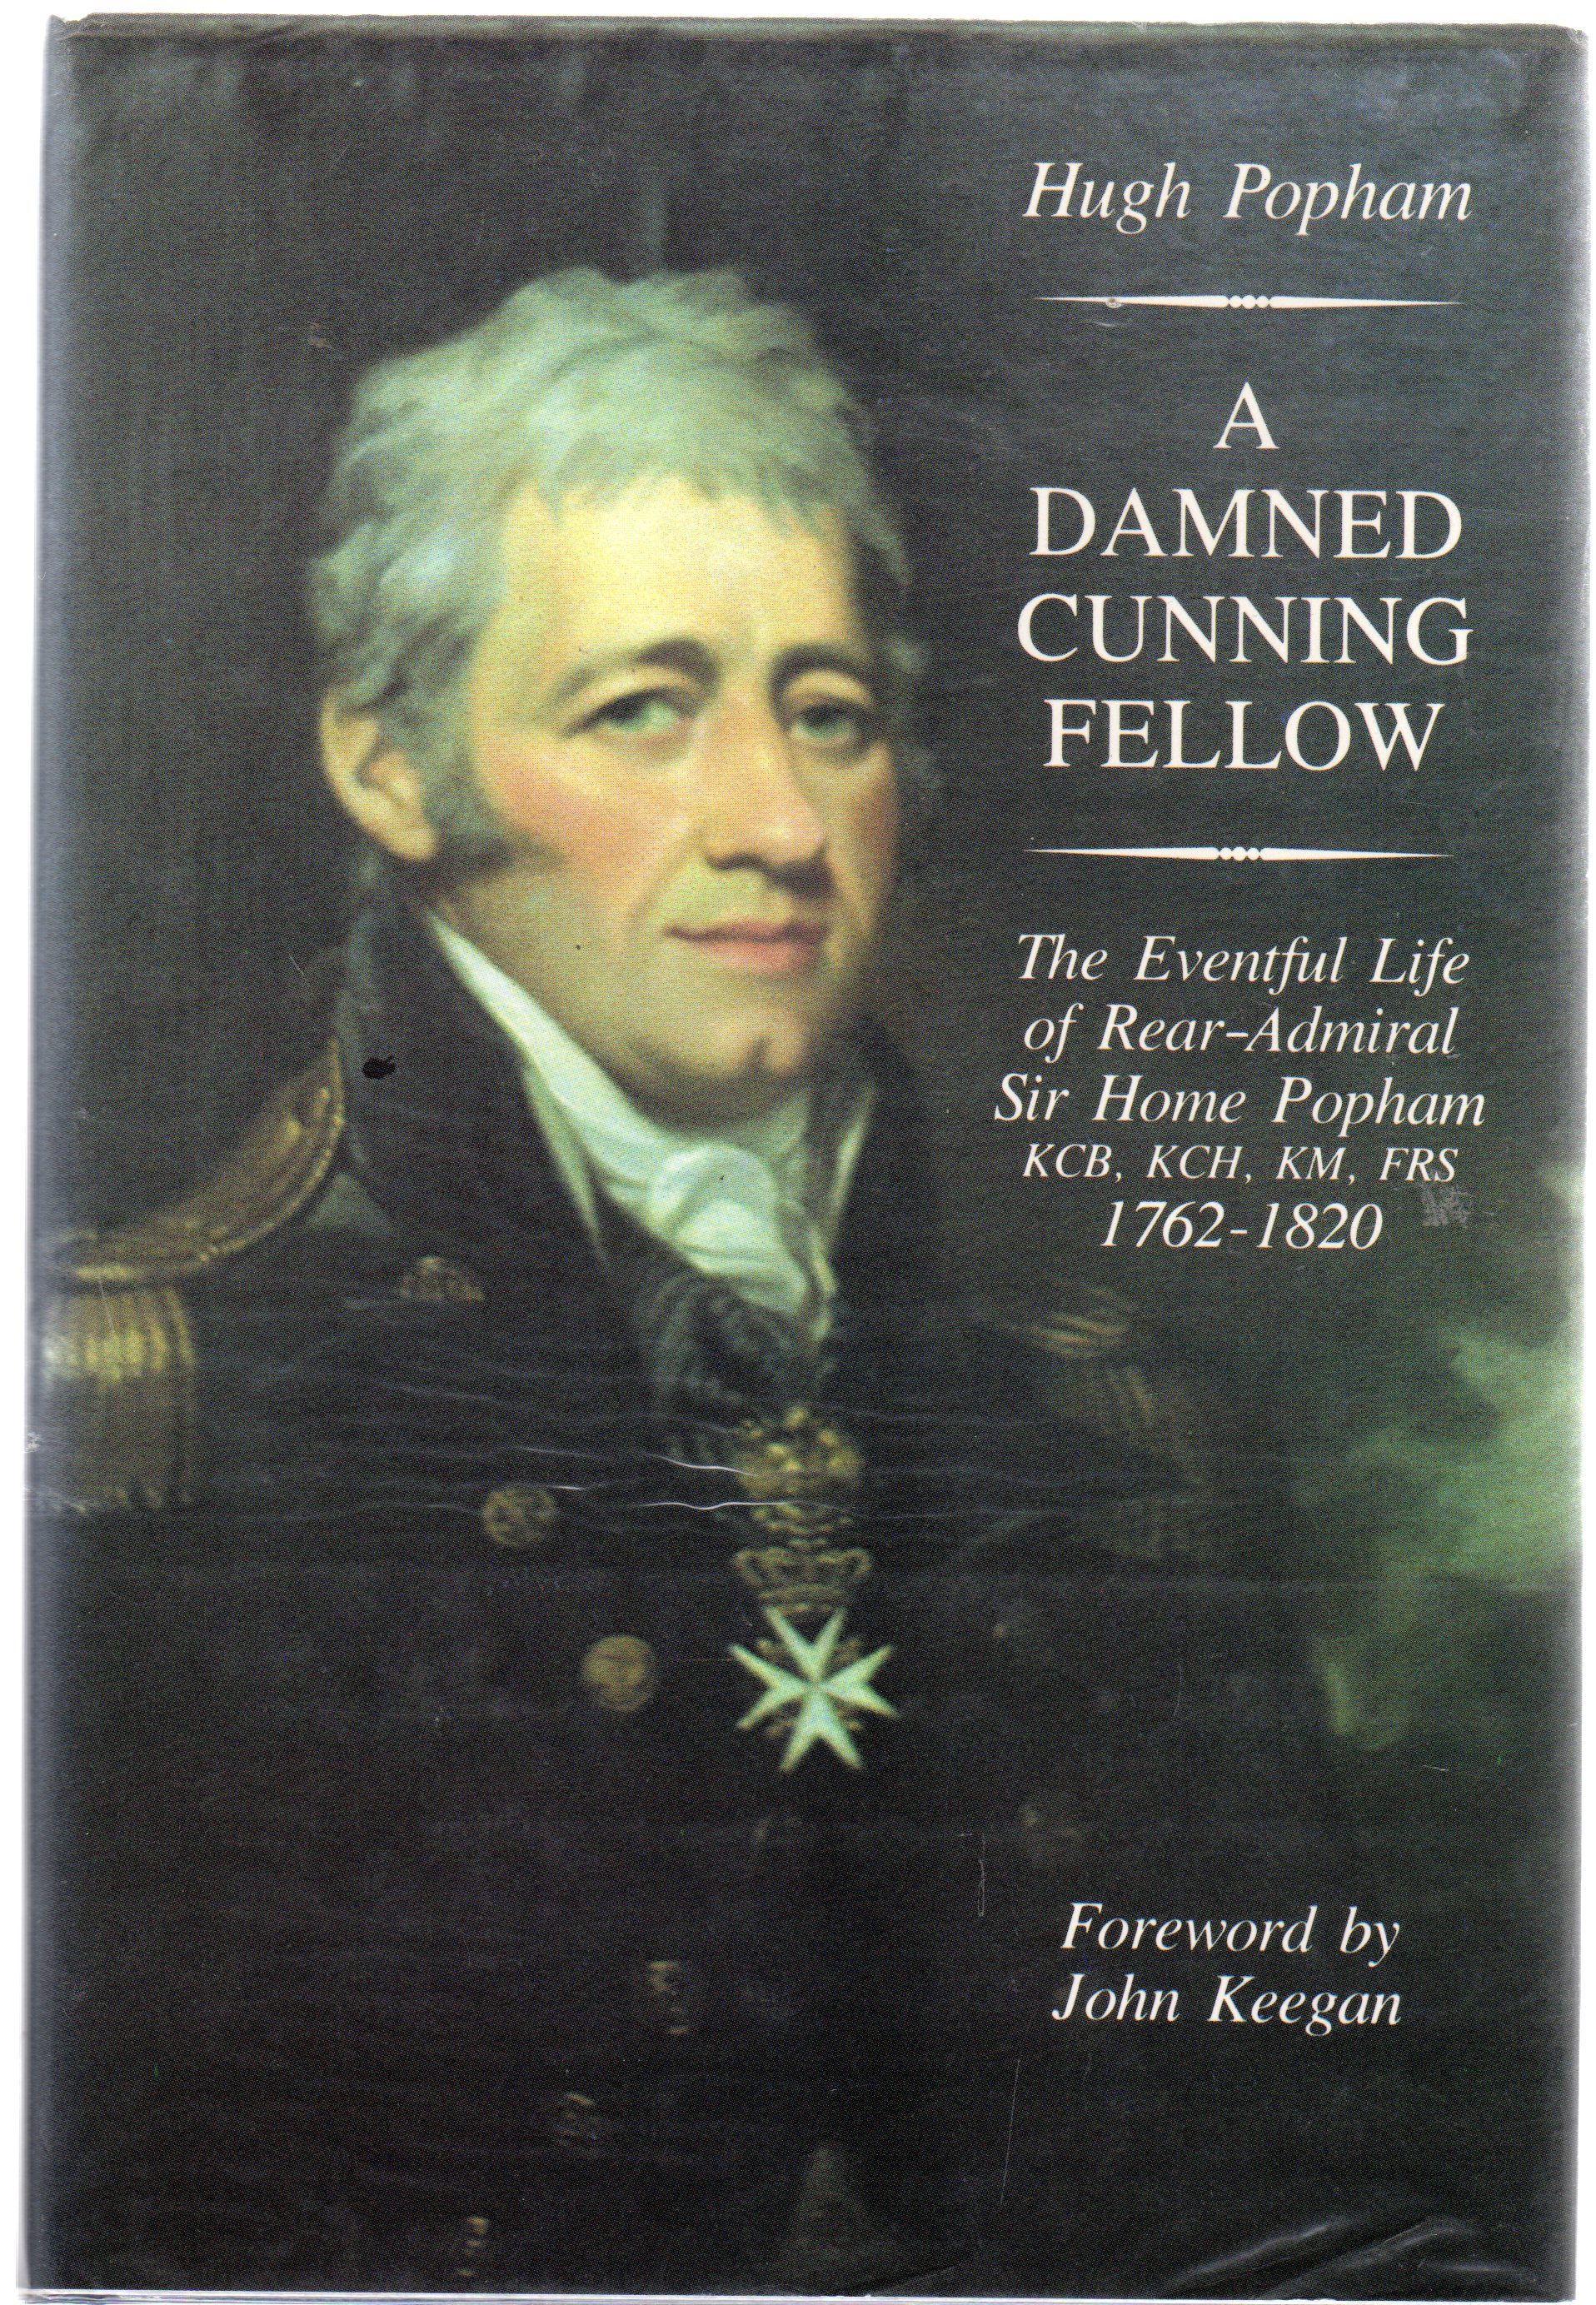 Image for A Damned Cunning Fellow : The Eventful Life of Rear Admiral Sir Home Popham, KCB, KCH, KM, FRS, 1762-1820